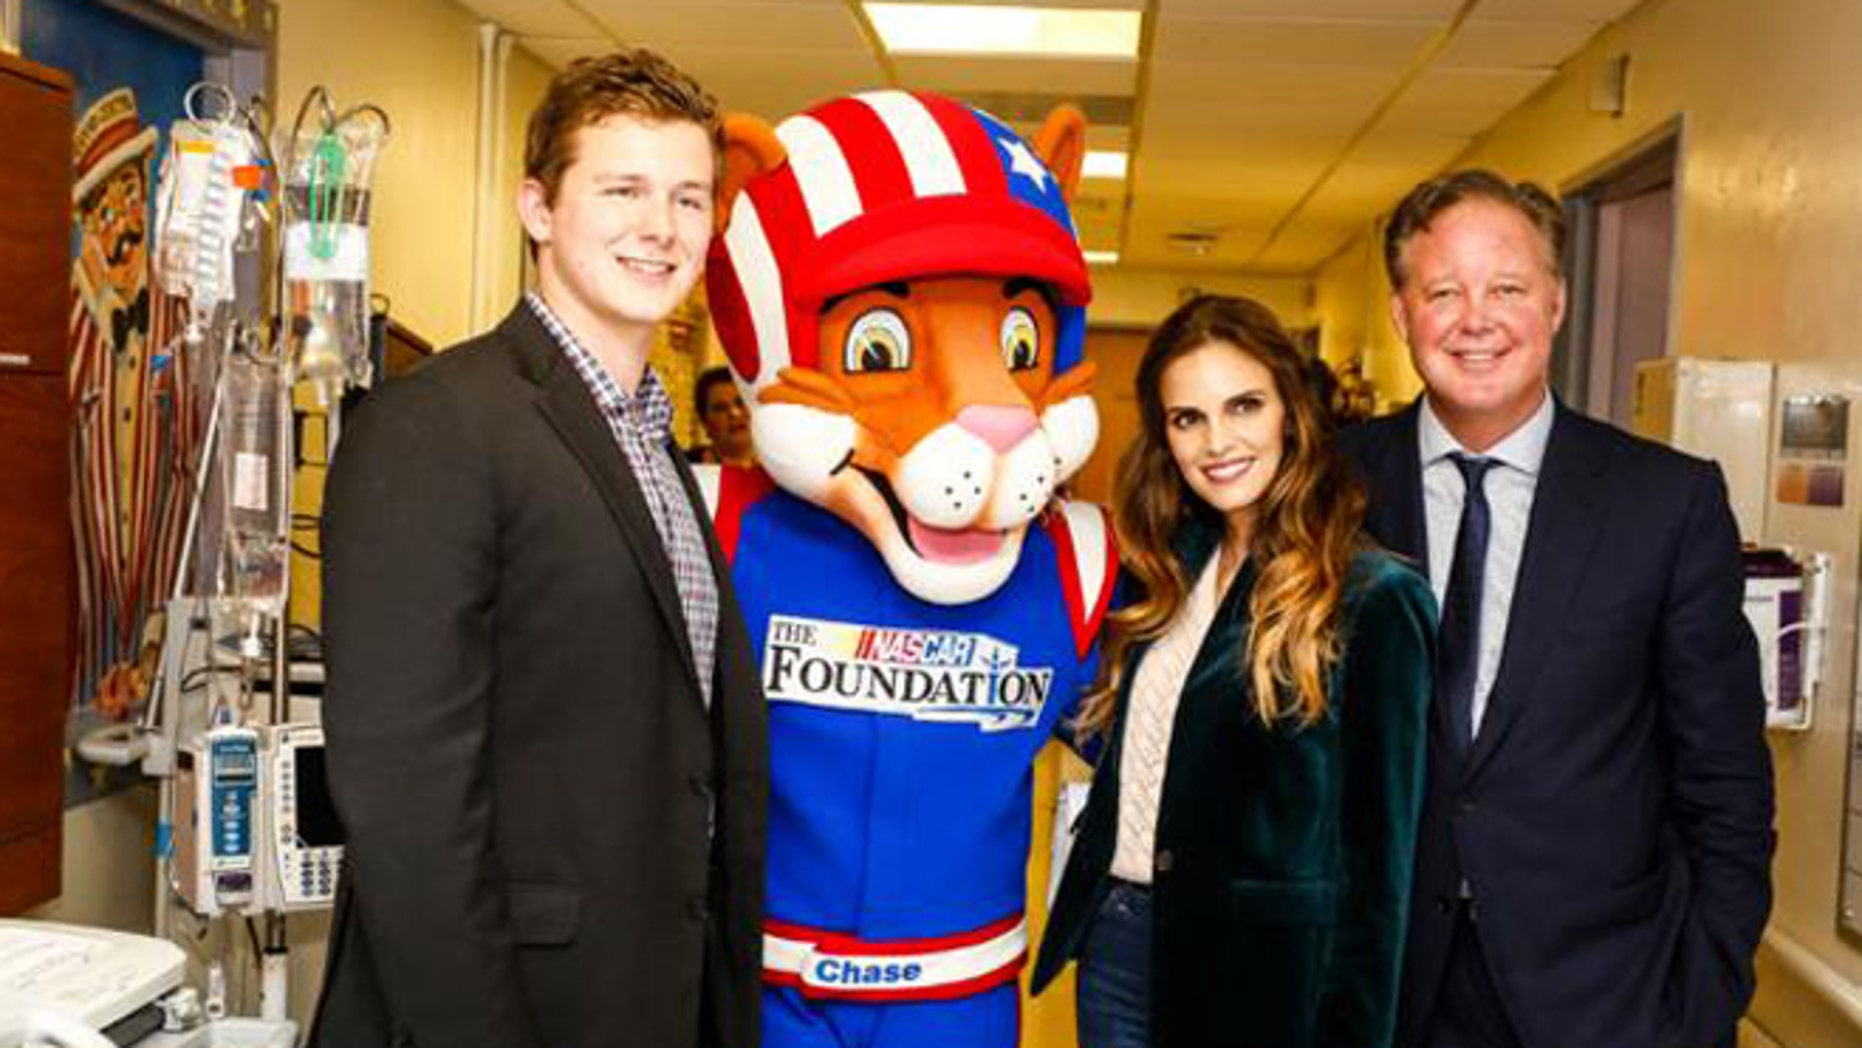 NASCAR Chairman and CEO Brian France (r), his wife Amy and NASCAR XFINITY Series Driver Matt Tifft (l) visited young patients at NYU Langone's Hassenfeld Children's Hospital Wednesday as part of the sport's Speediatrics Children's Fund.